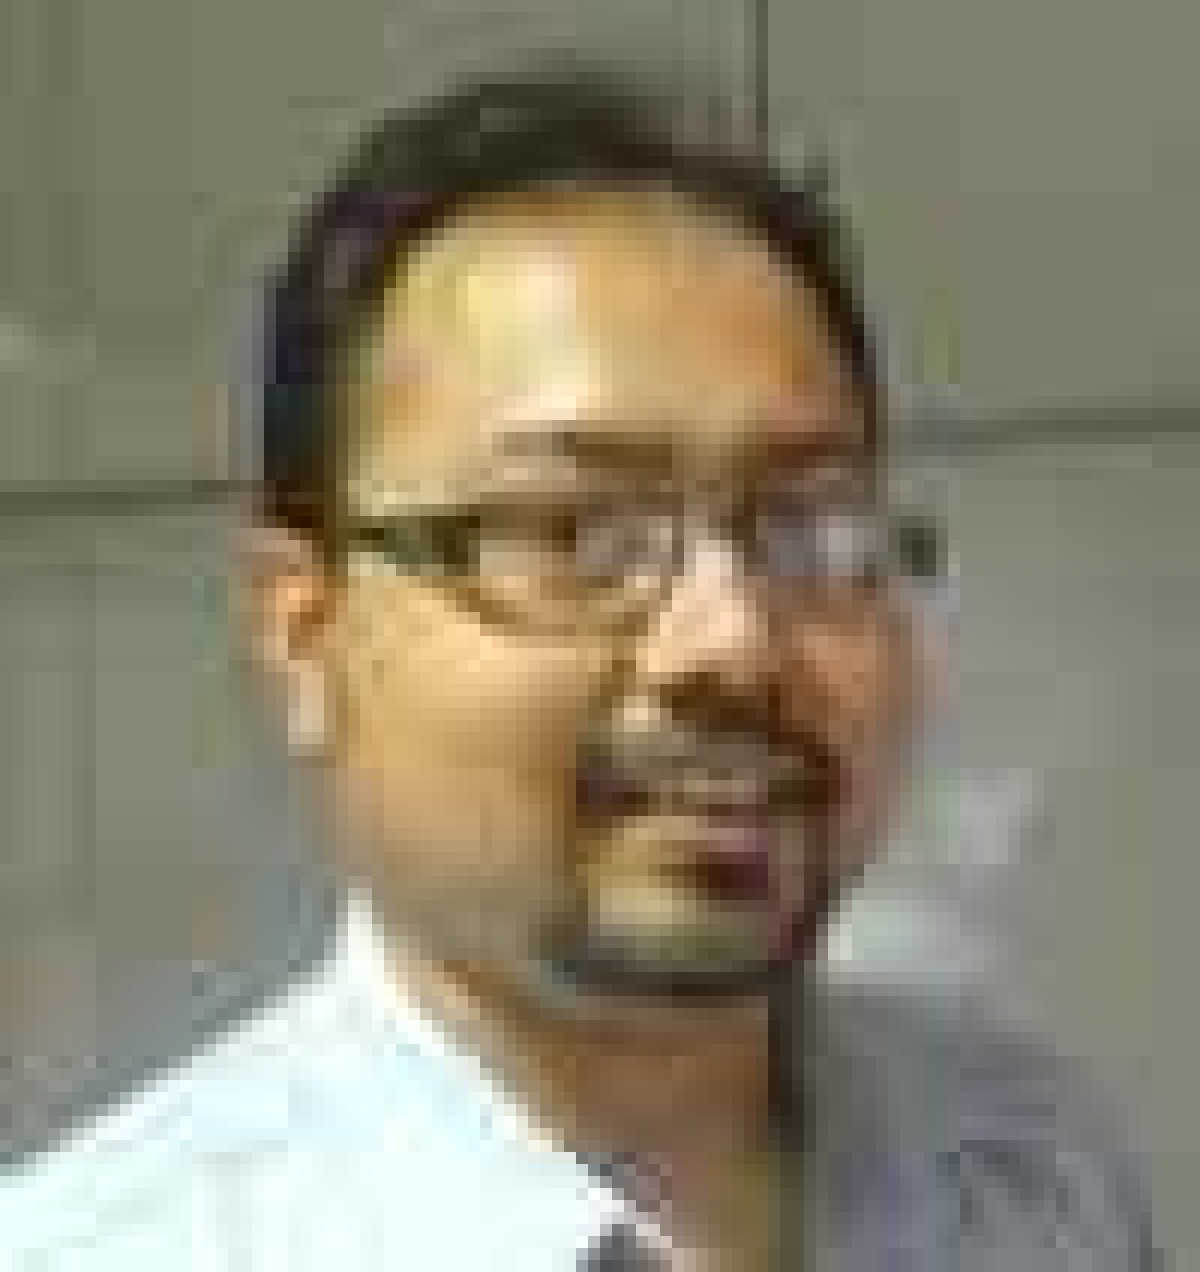 iContract's Sudarshan Banerjee moves to Saatchi Bangalore